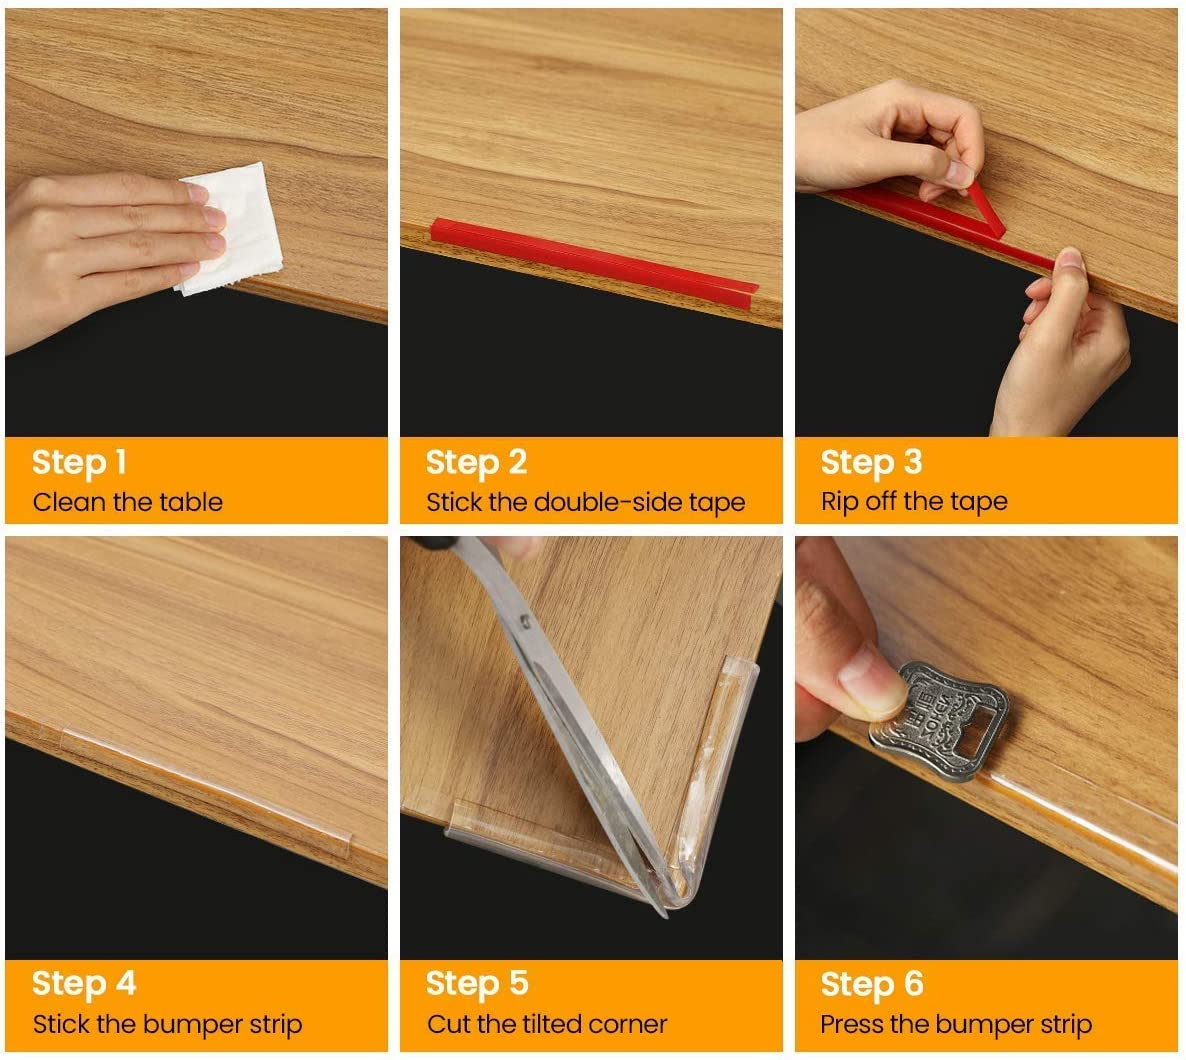 Wall Corners and Beds Protective Strip,Transparent Corner Guards Corner Protectors for Kids 20 Feet Soft PVC Furniture Table Edge Protectors with Double-Sided Tape for Furniture Edge,Chairs